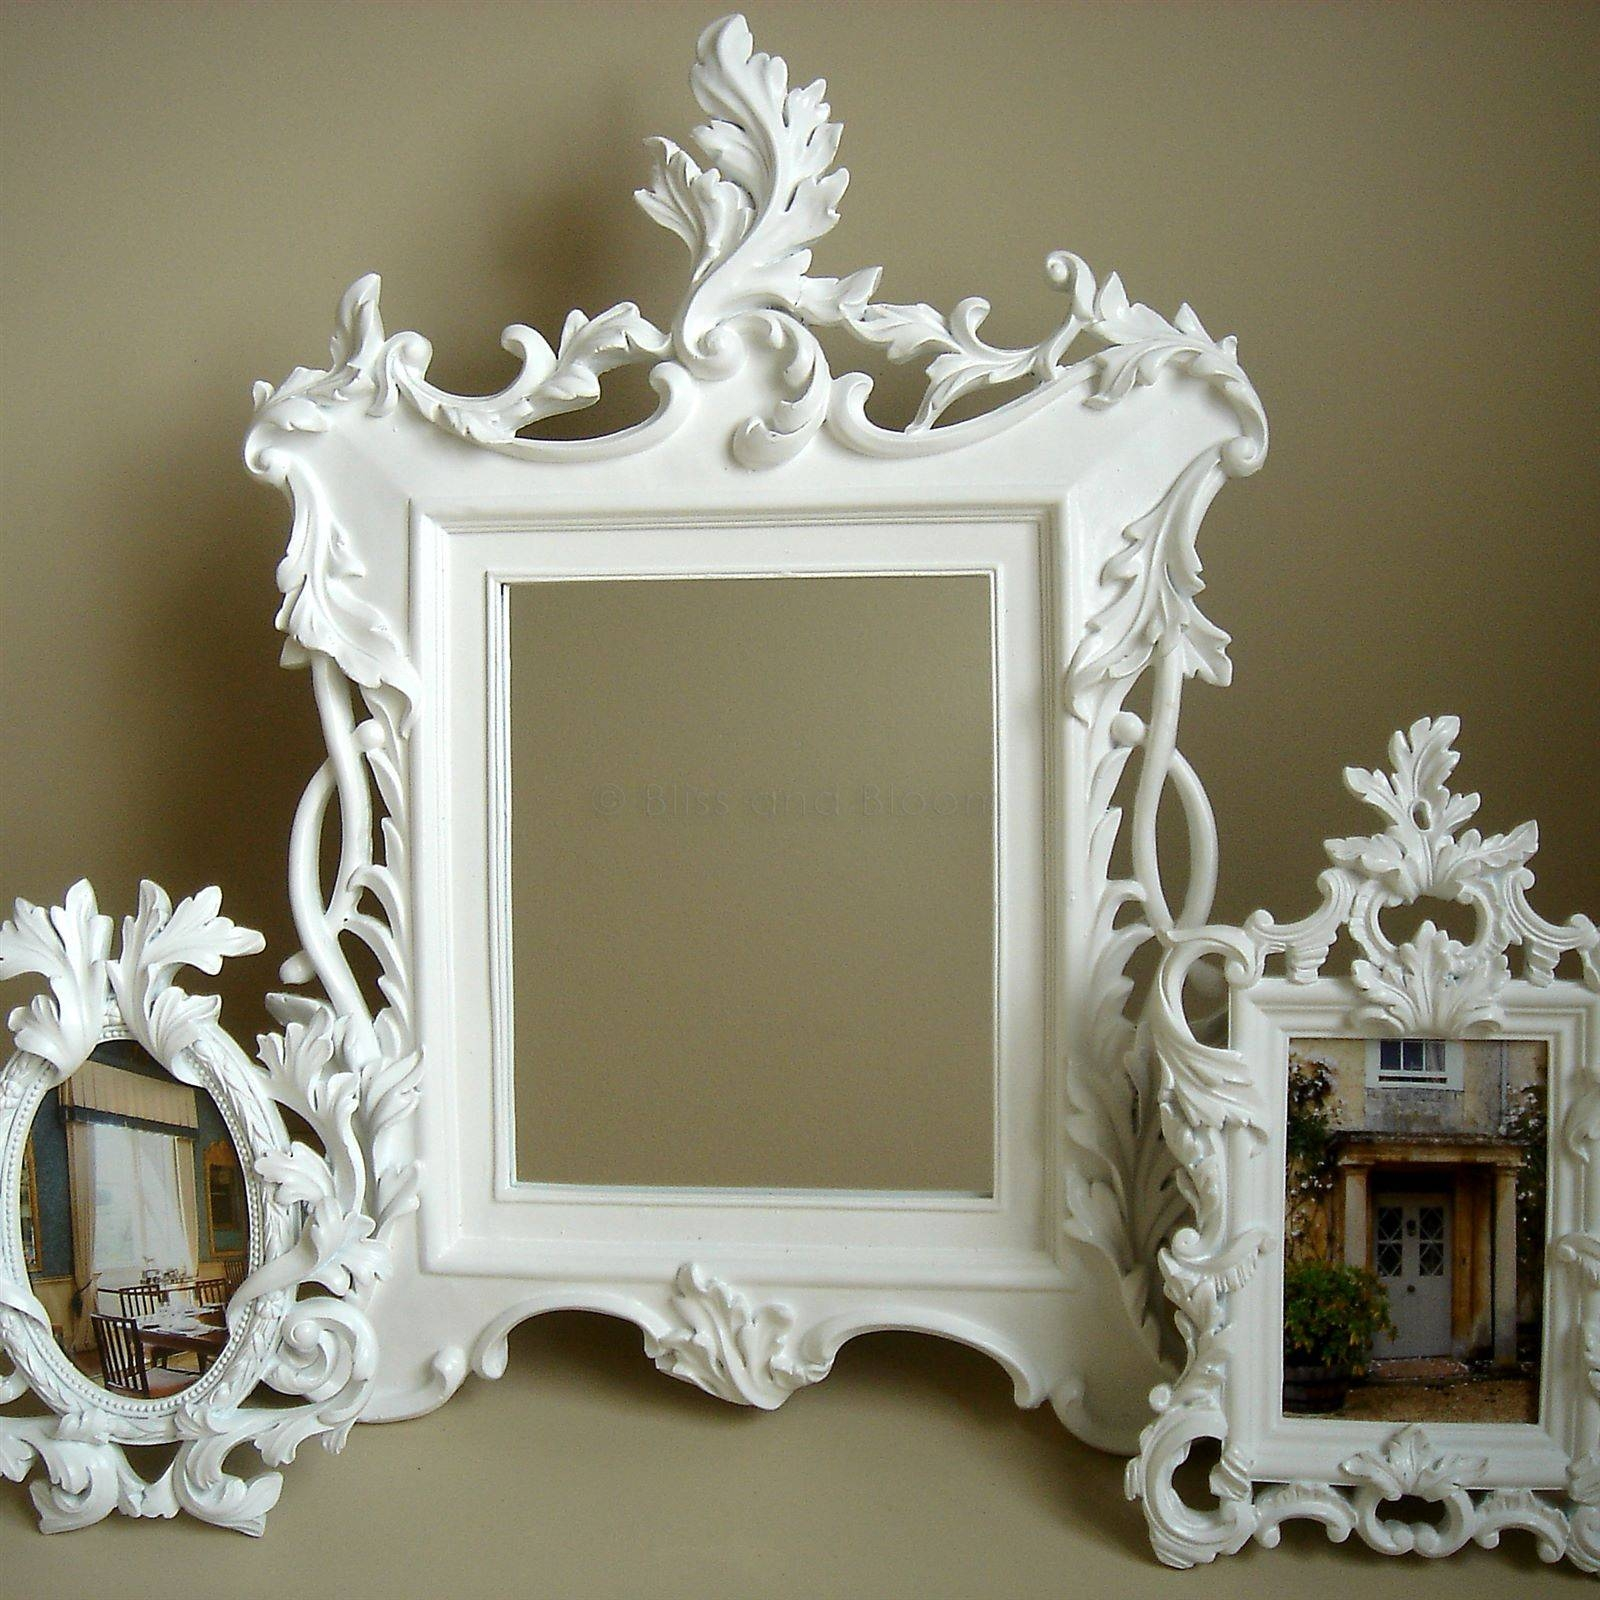 Bathroom: Astounding Baroque Mirror With Unique Frame For Bathroom in Baroque White Mirrors (Image 9 of 25)